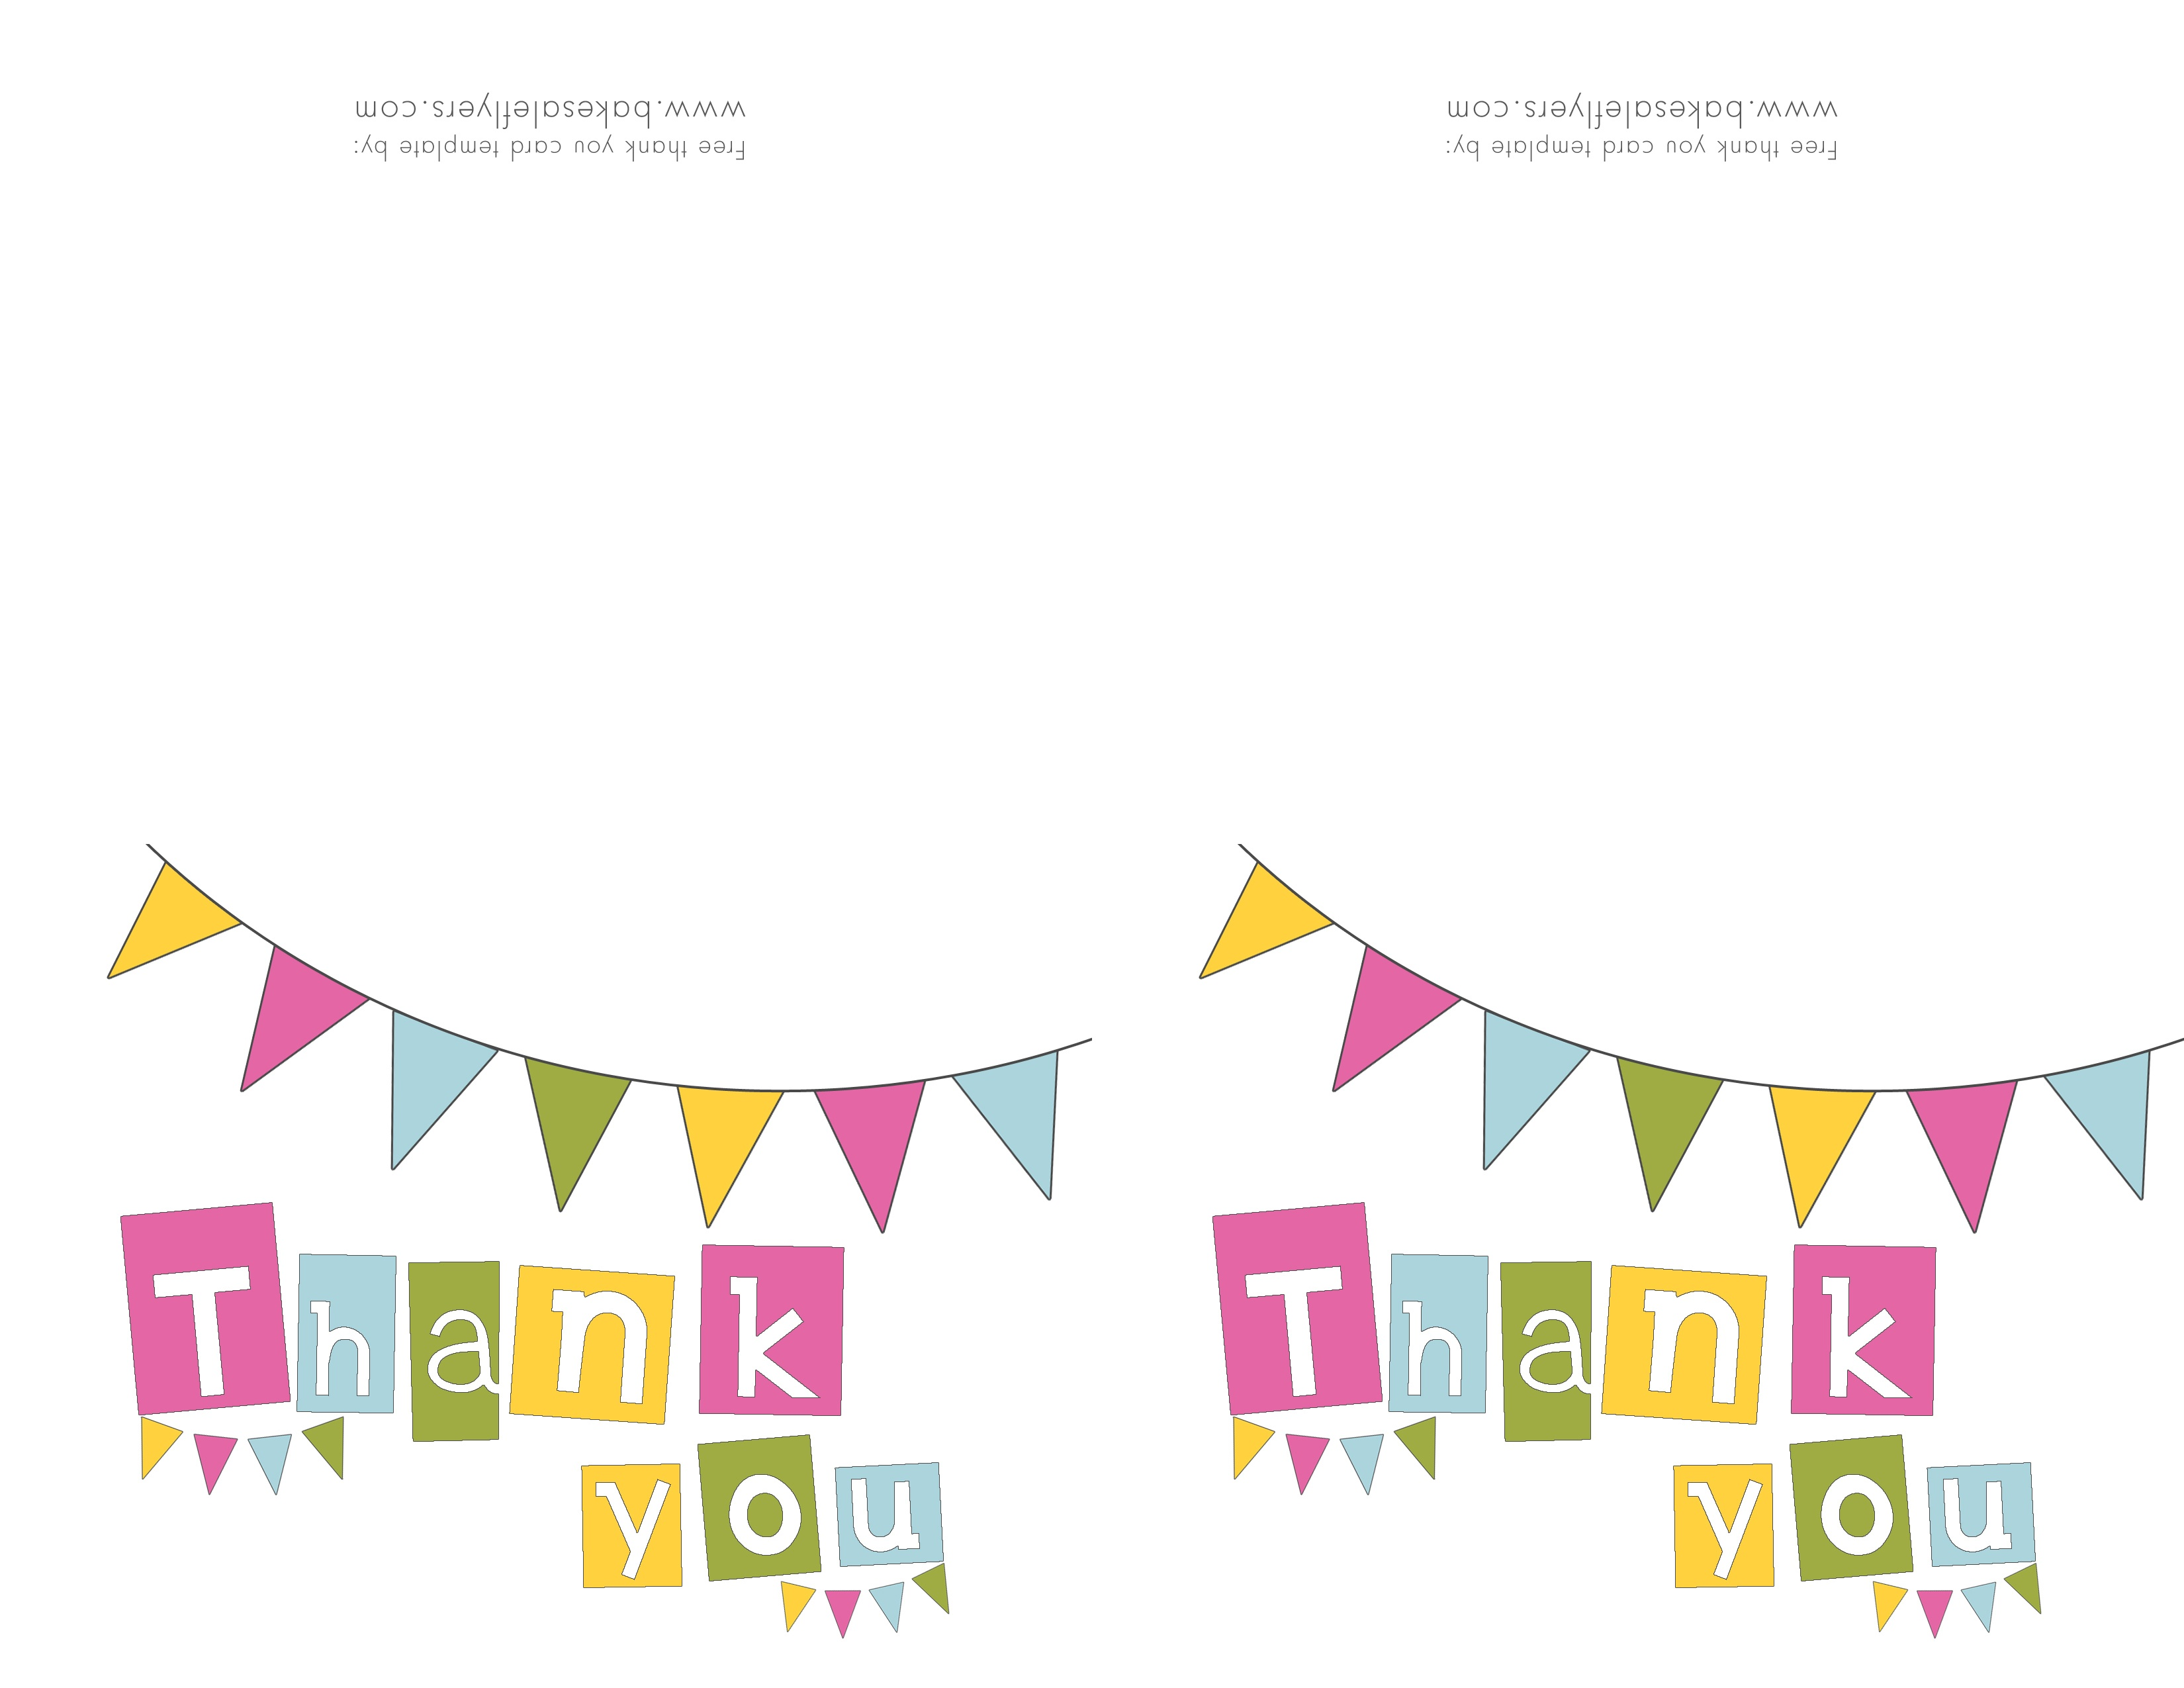 Free Printable Thank You Cards | Bake Sale Flyers – Free Flyer Designs - Thank You Card Free Printable Template